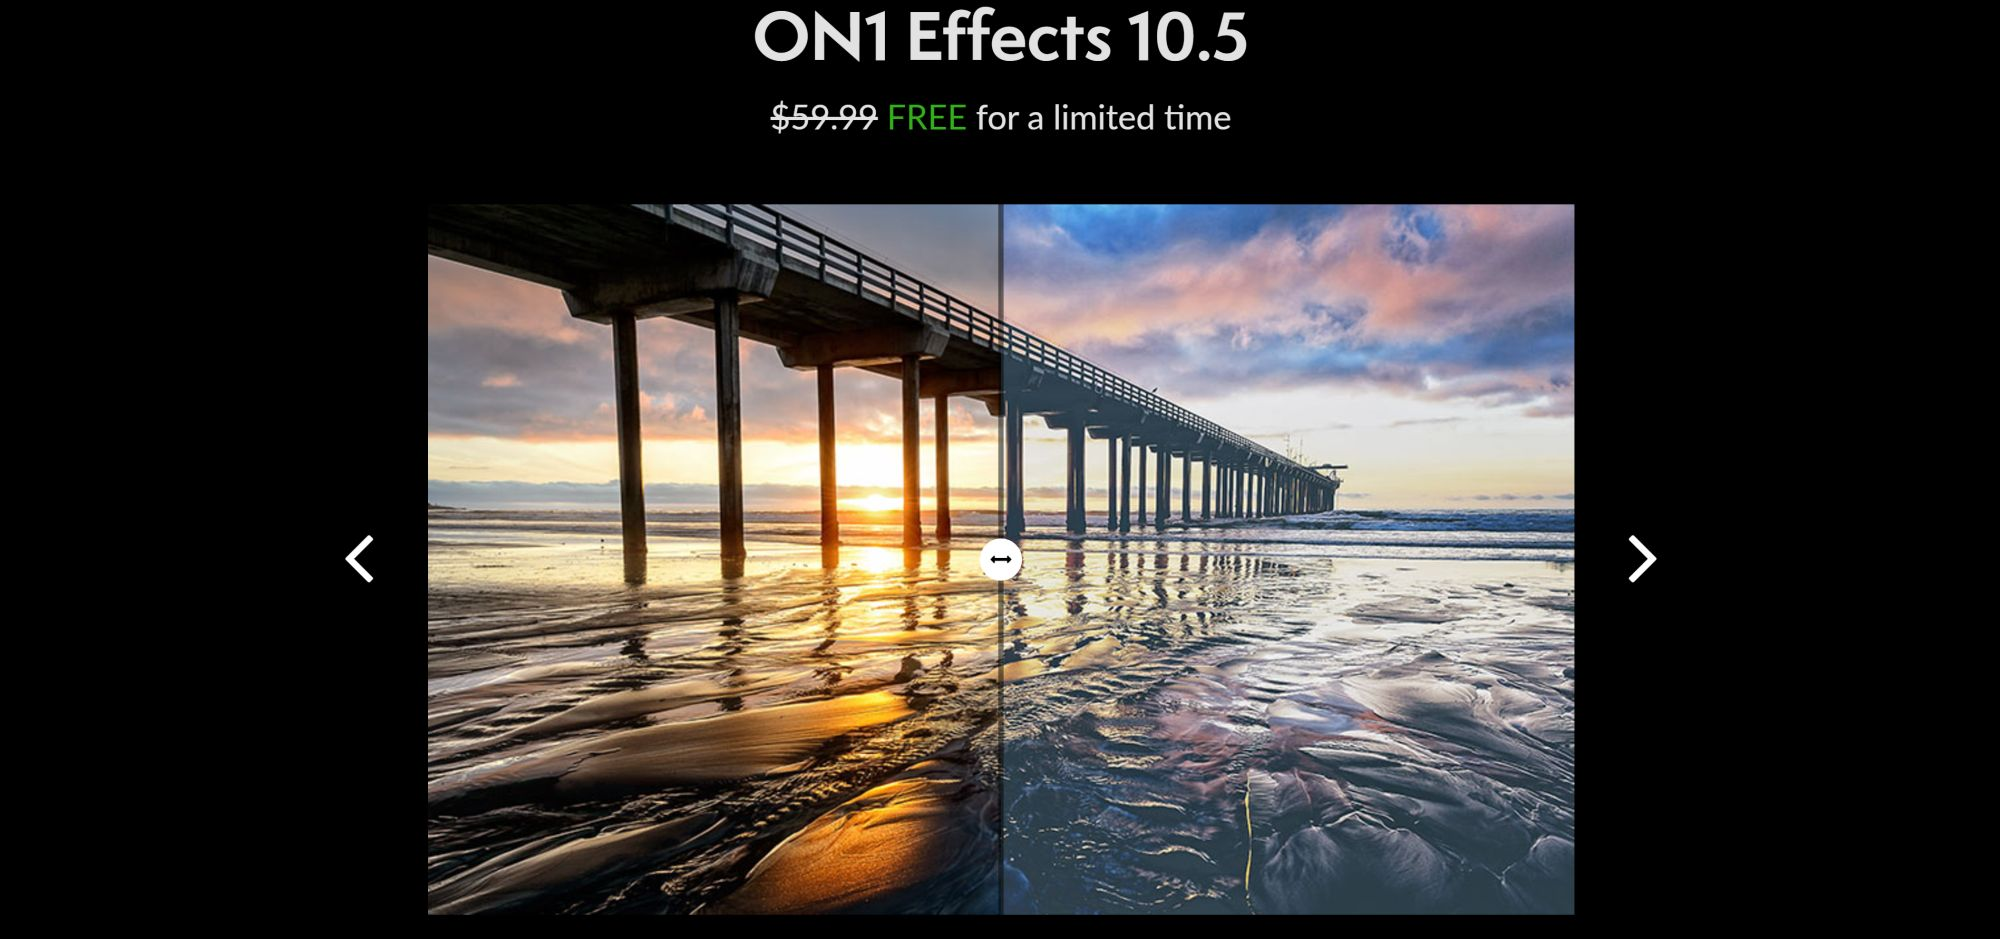 Hot Deal: Get ON1 Effects 10.5 for Free